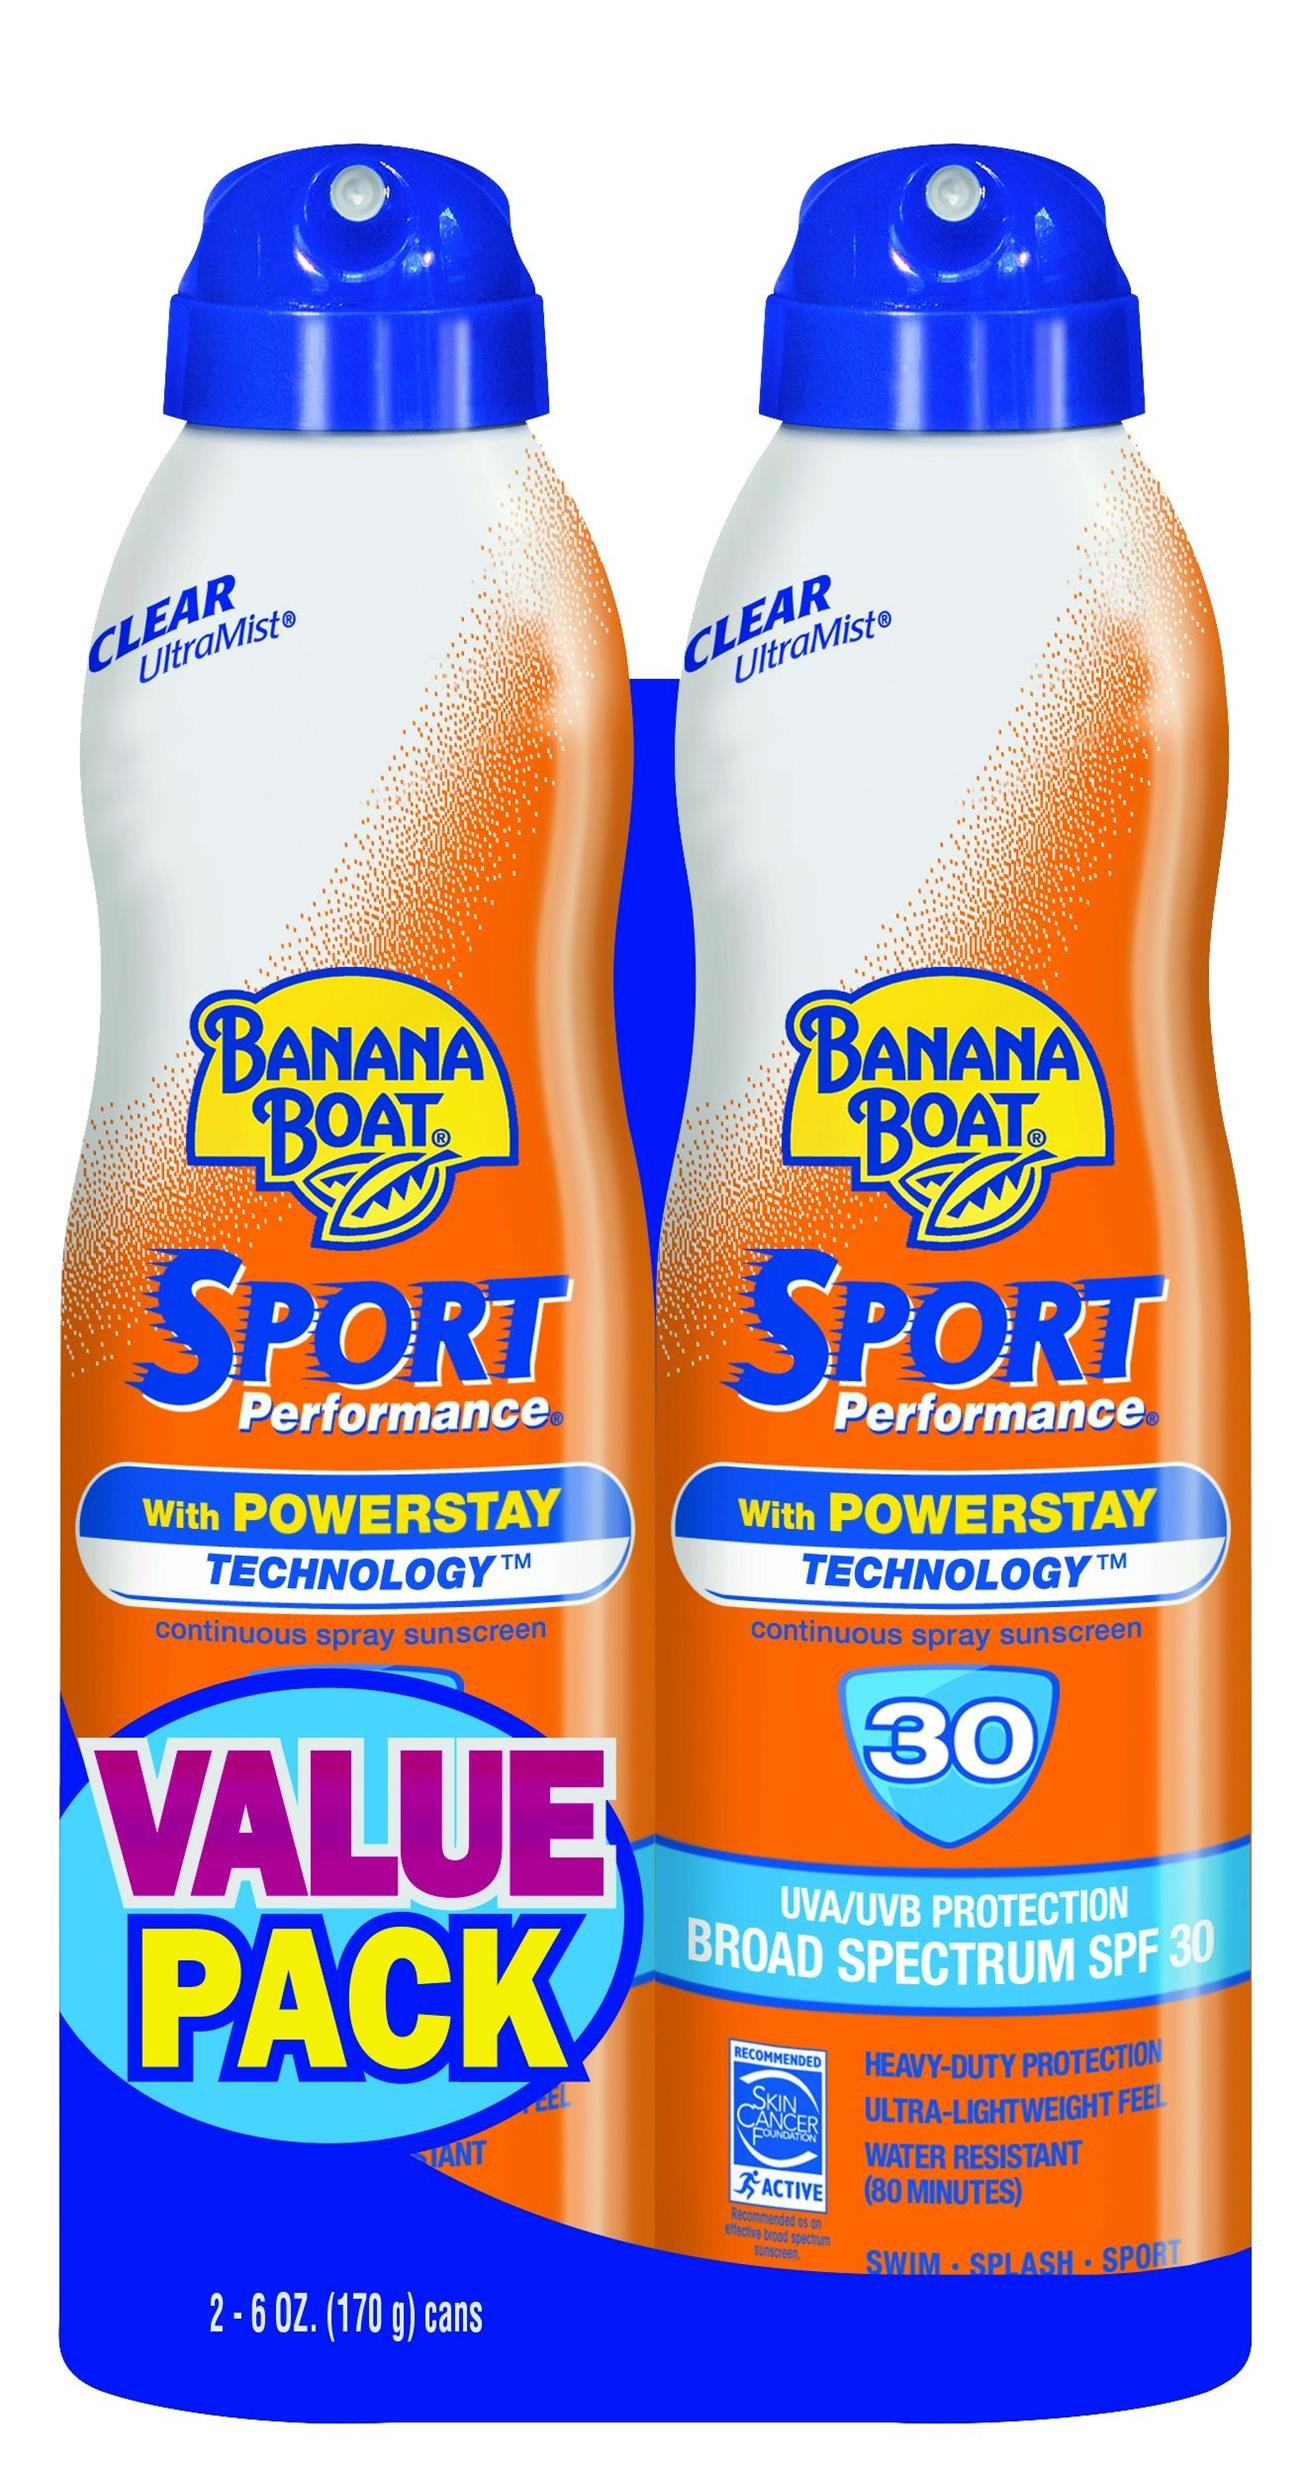 Banana Boat Sport Sunscreen Spray, SPF 30, Reef Safe, 6 ounces (Pack of 2)